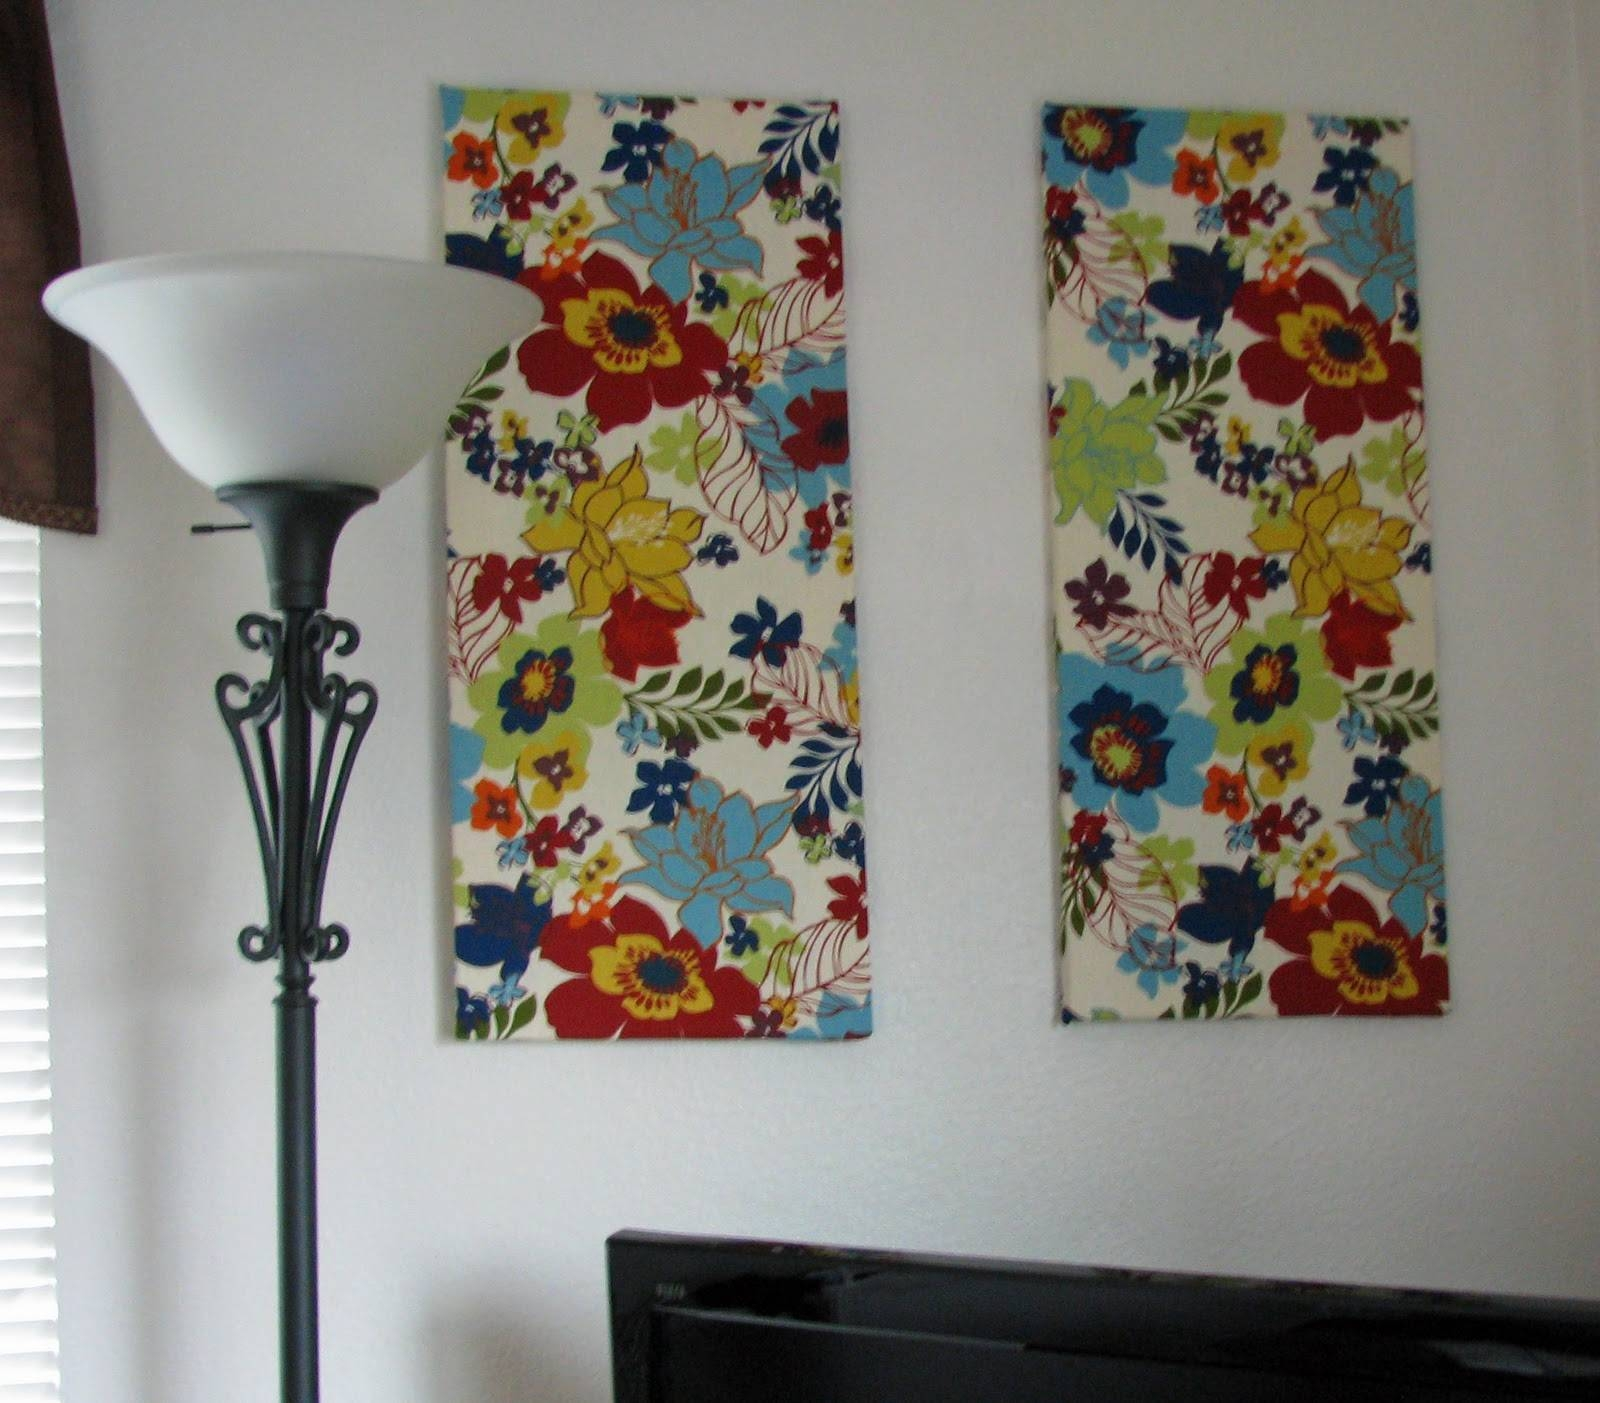 Fabrics Wall Art – Allstateloghomes With Regard To 2017 Fabric Wall Art (View 9 of 20)